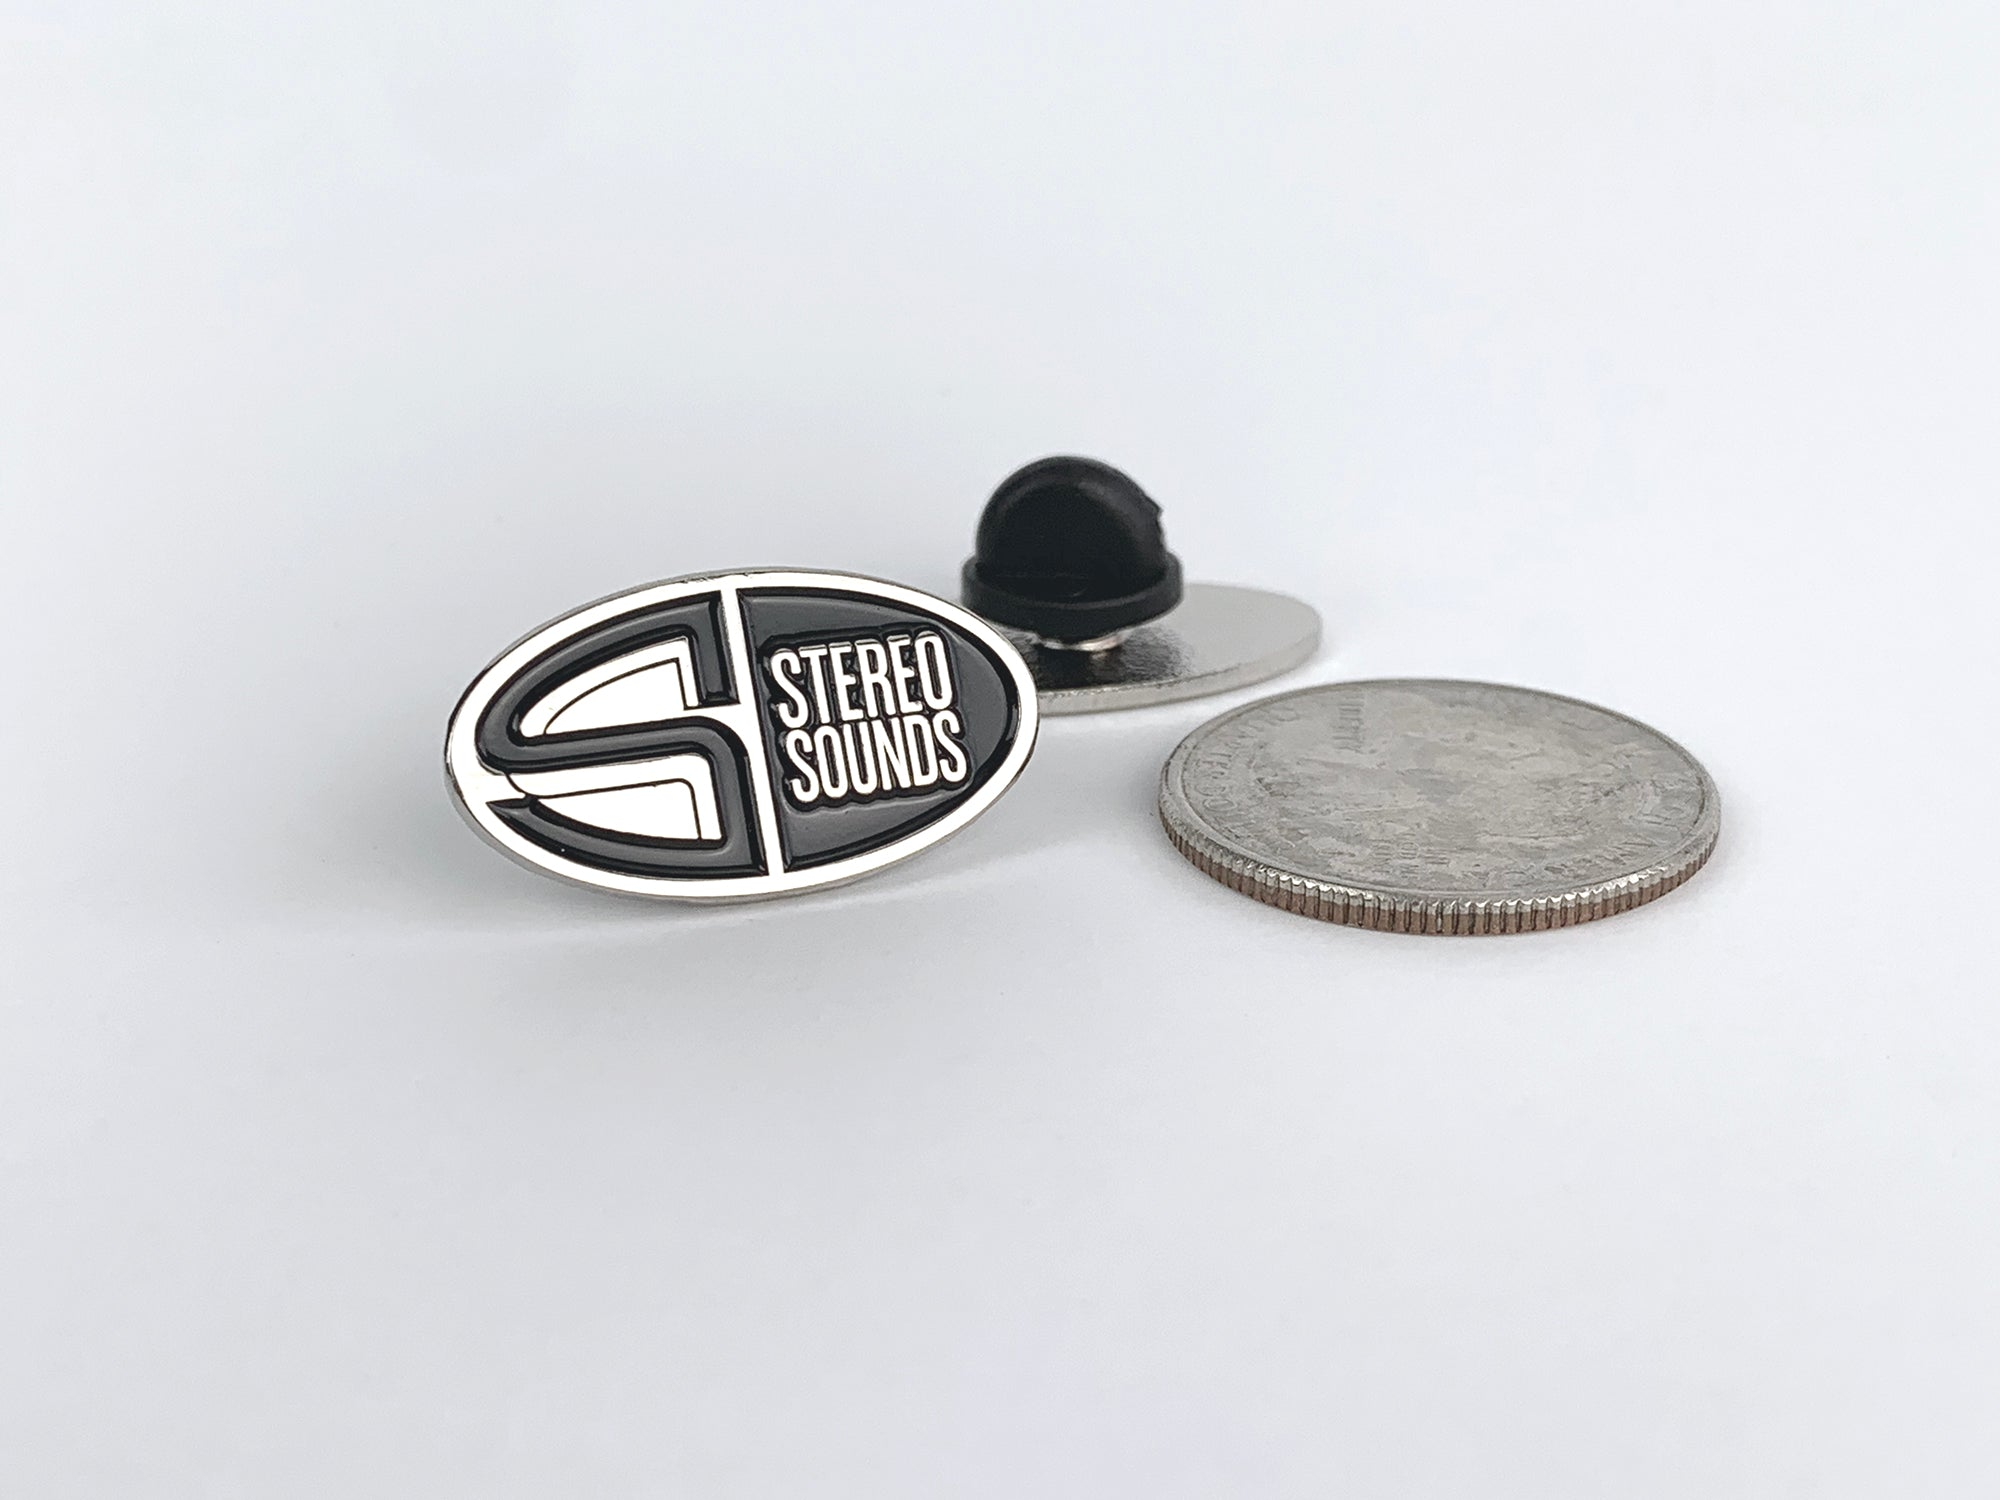 Stereo Sounds enamel pin